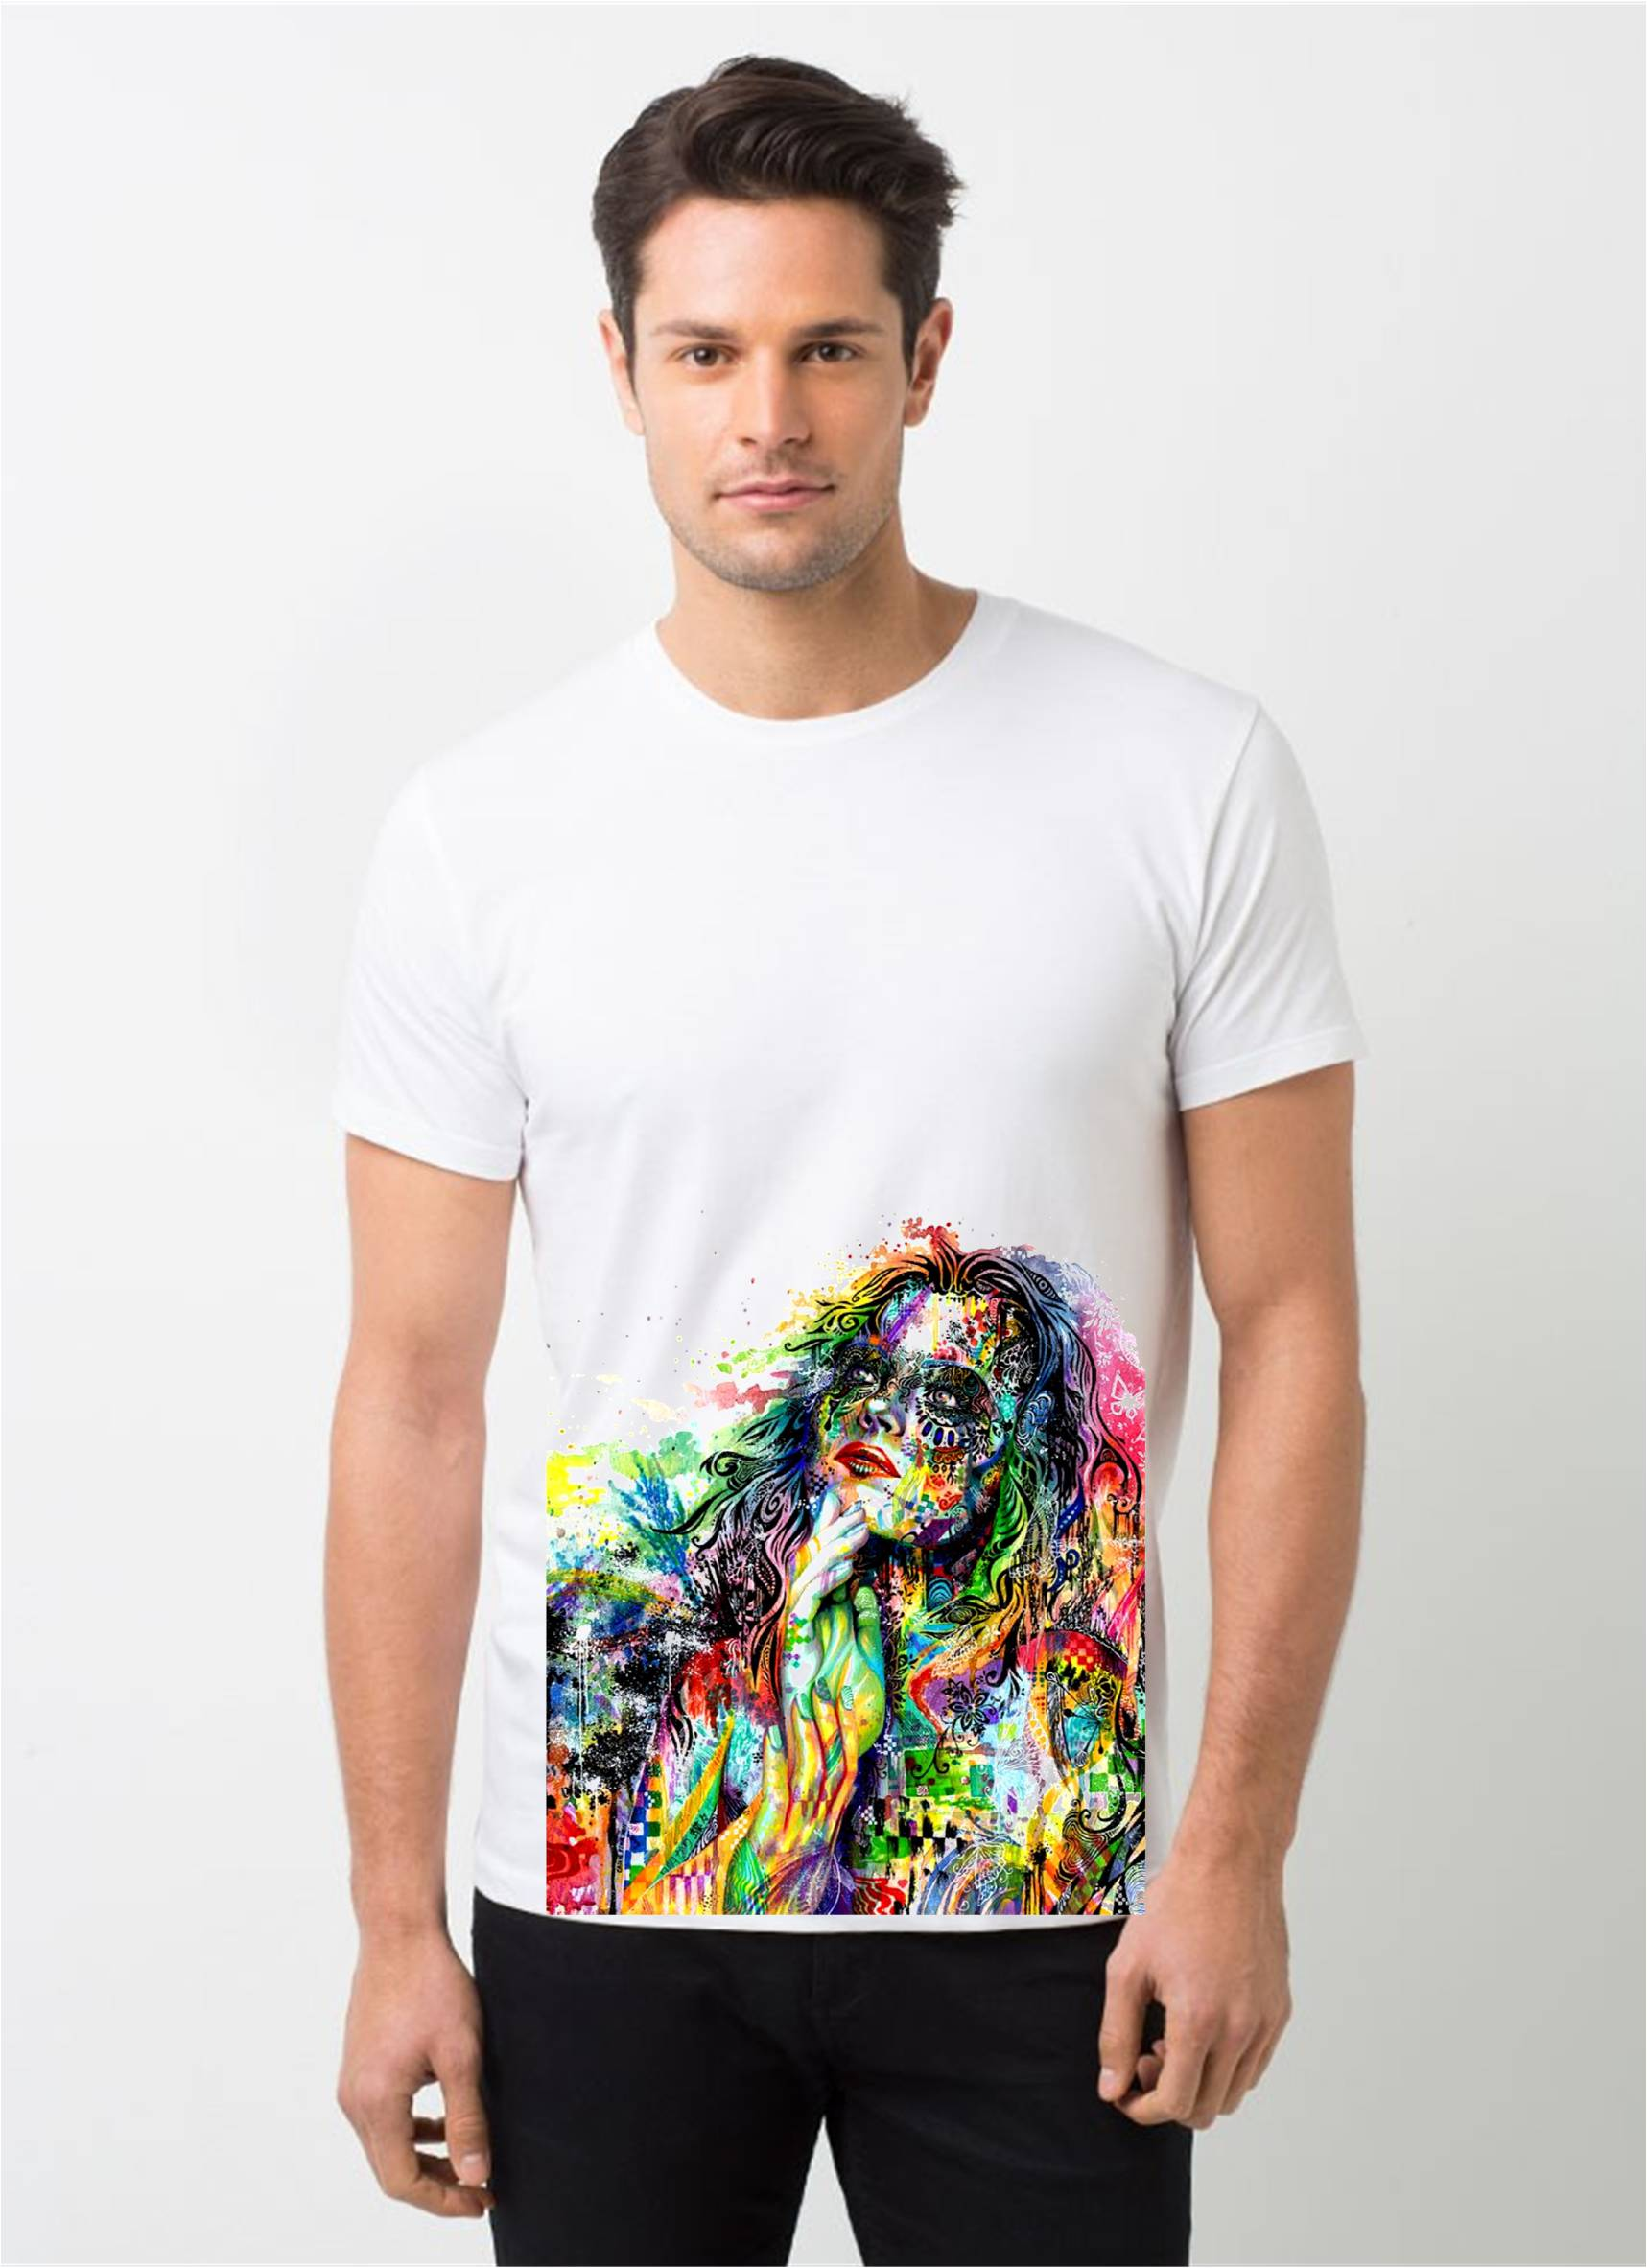 HamsaMART White Round Neck Printed T-Shirt For Men -T447